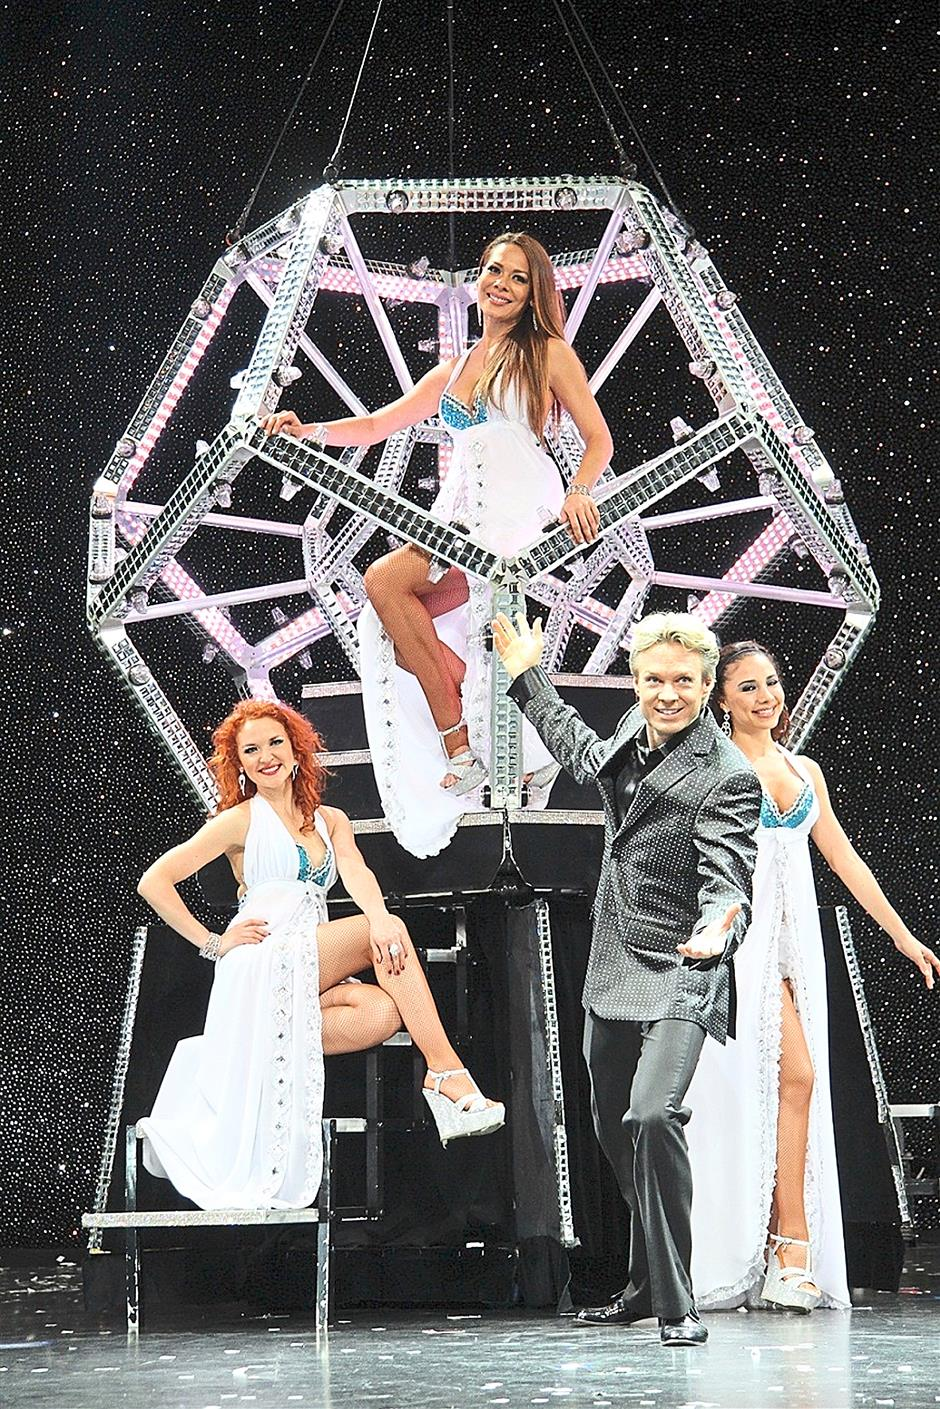 Be dazzled by Marvey and his bevy of beautiful assistants at the show, in which one of the greatest illusions is the Diamond Illusion that utilises the giant see-through polygon seen here.